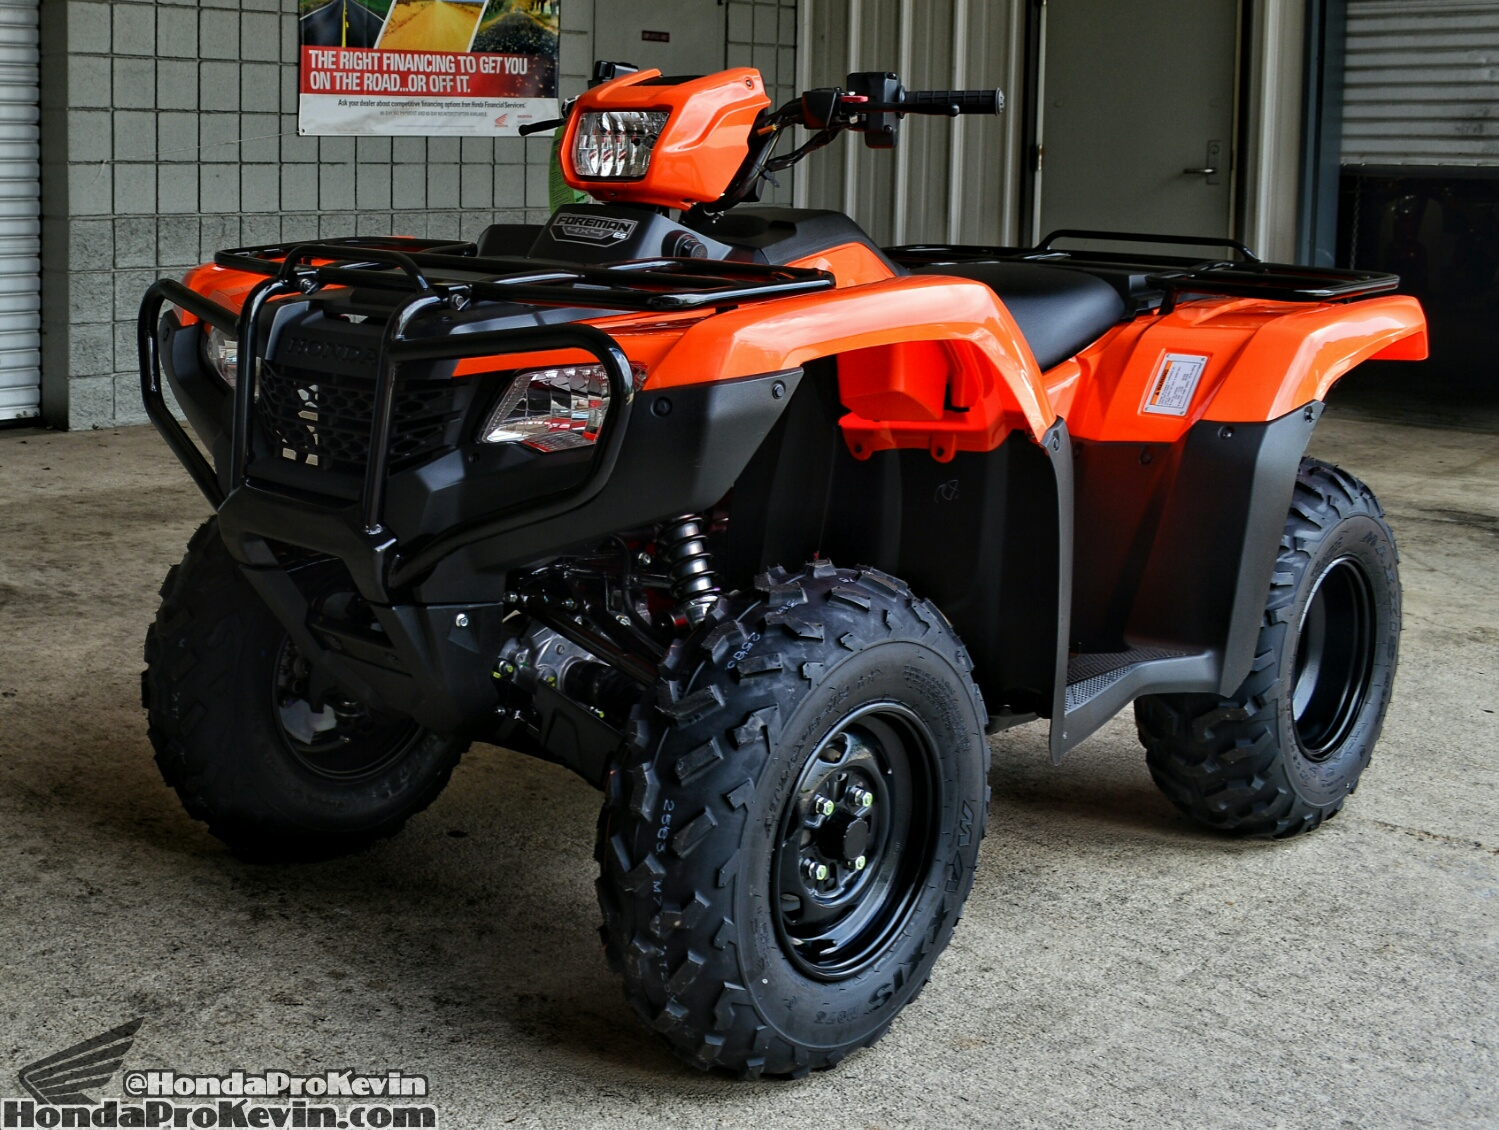 2016 Honda Foreman Es 500 Review Specs Trx500fe1 Overview